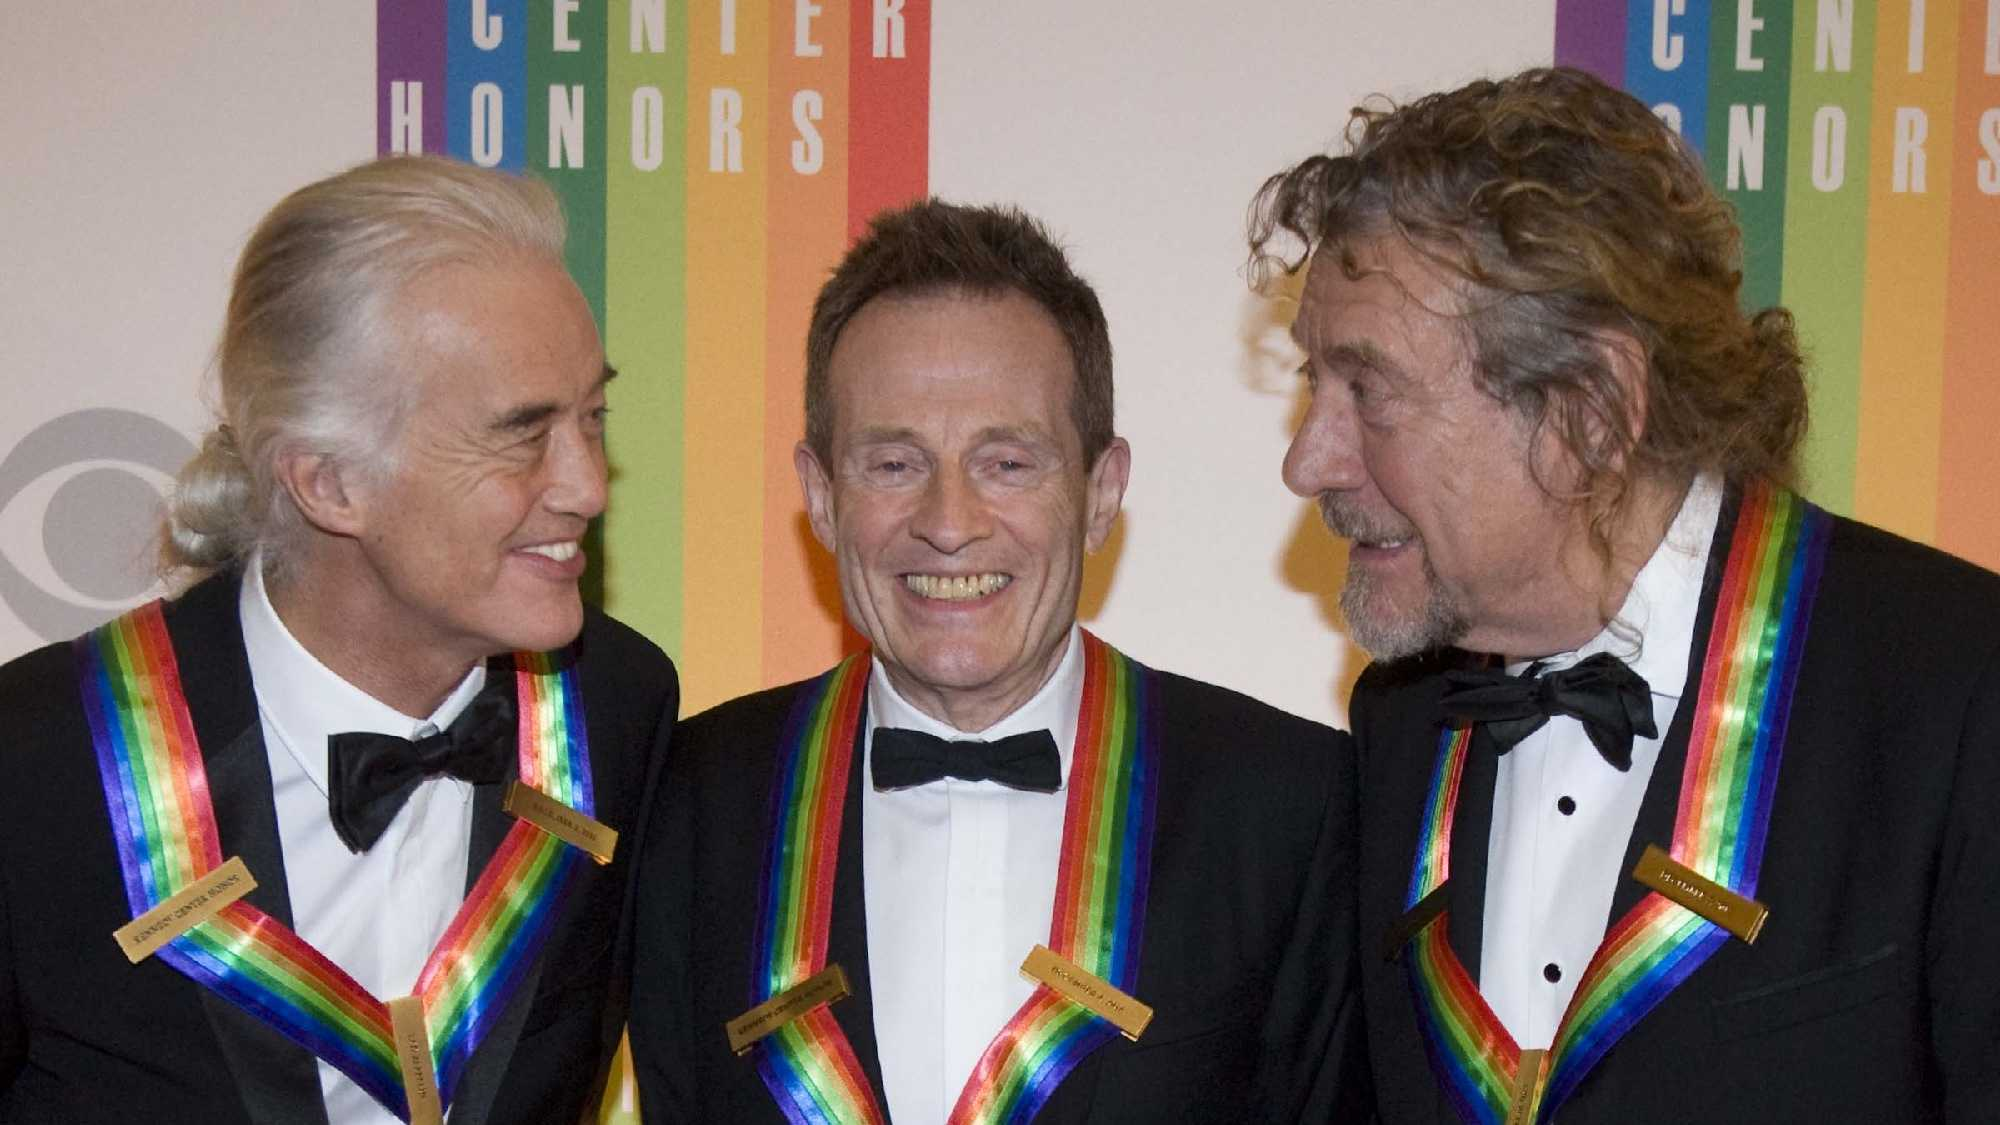 2012 Kennedy Center Honorees and members of the band Led Zeppelin, from left, Jimmy Page, John Paul Jones, and Robert Plant chat on the red carpet after arriving at the Kennedy Center for the Performing Arts for the 2012 Kennedy Center Honors Performance and Gala Sunday, Dec. 2, 2012 at the State Department in Washington.